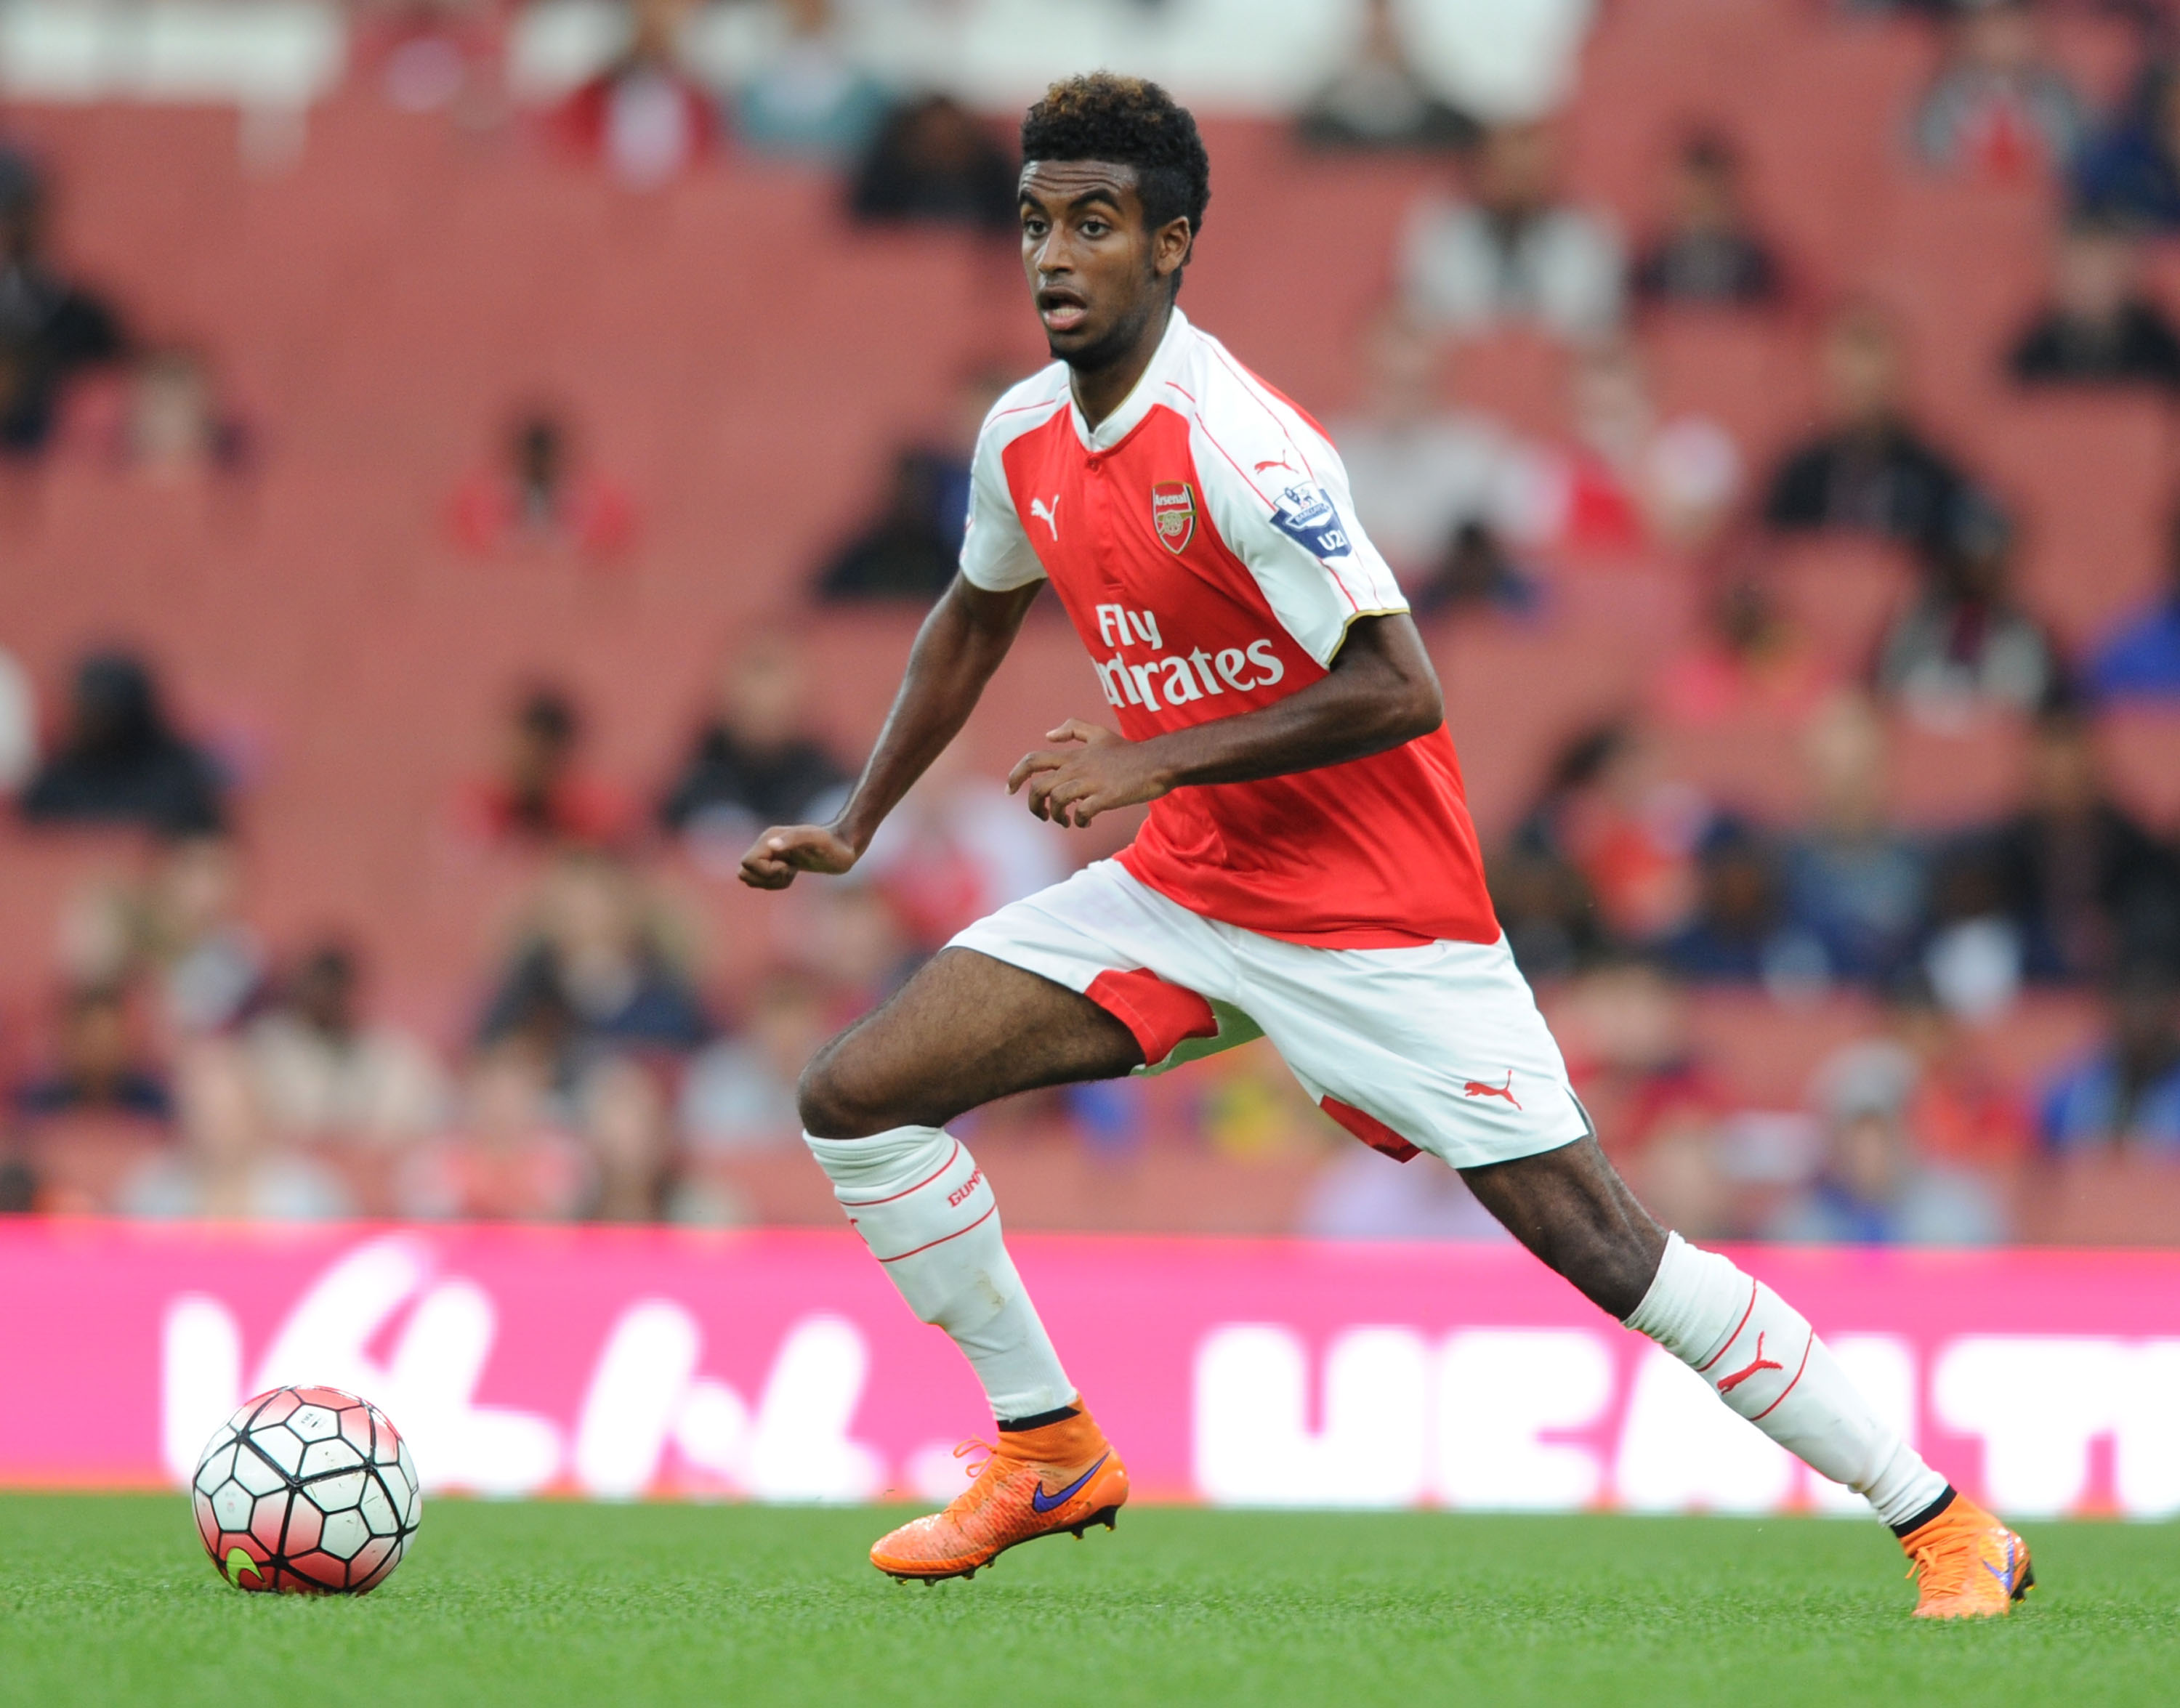 Arsenal scout Danny Karbassiyoon reveals just how good Gedion Zelalem is